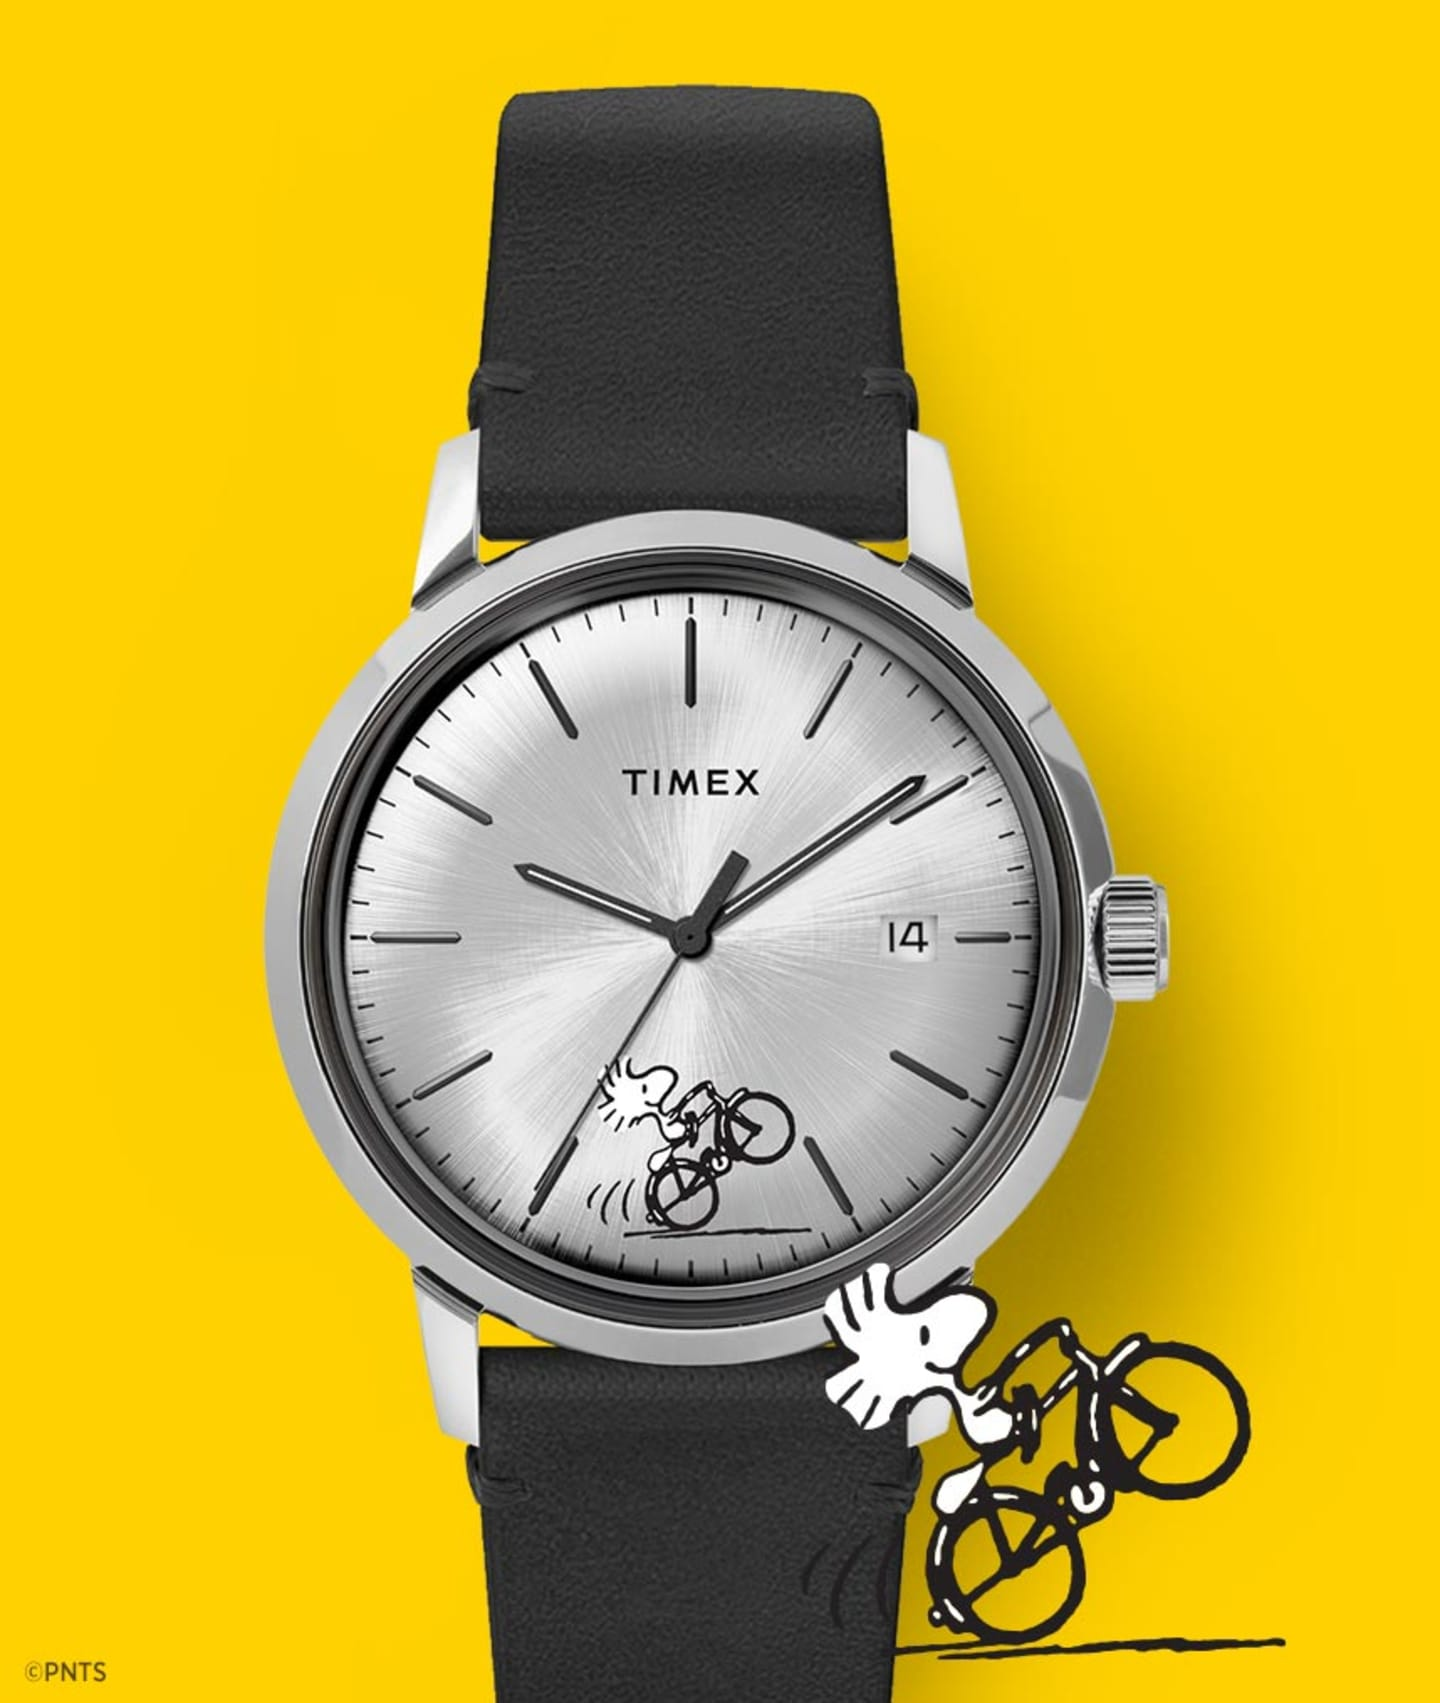 Marlin Snoopy Woodstock Watch.